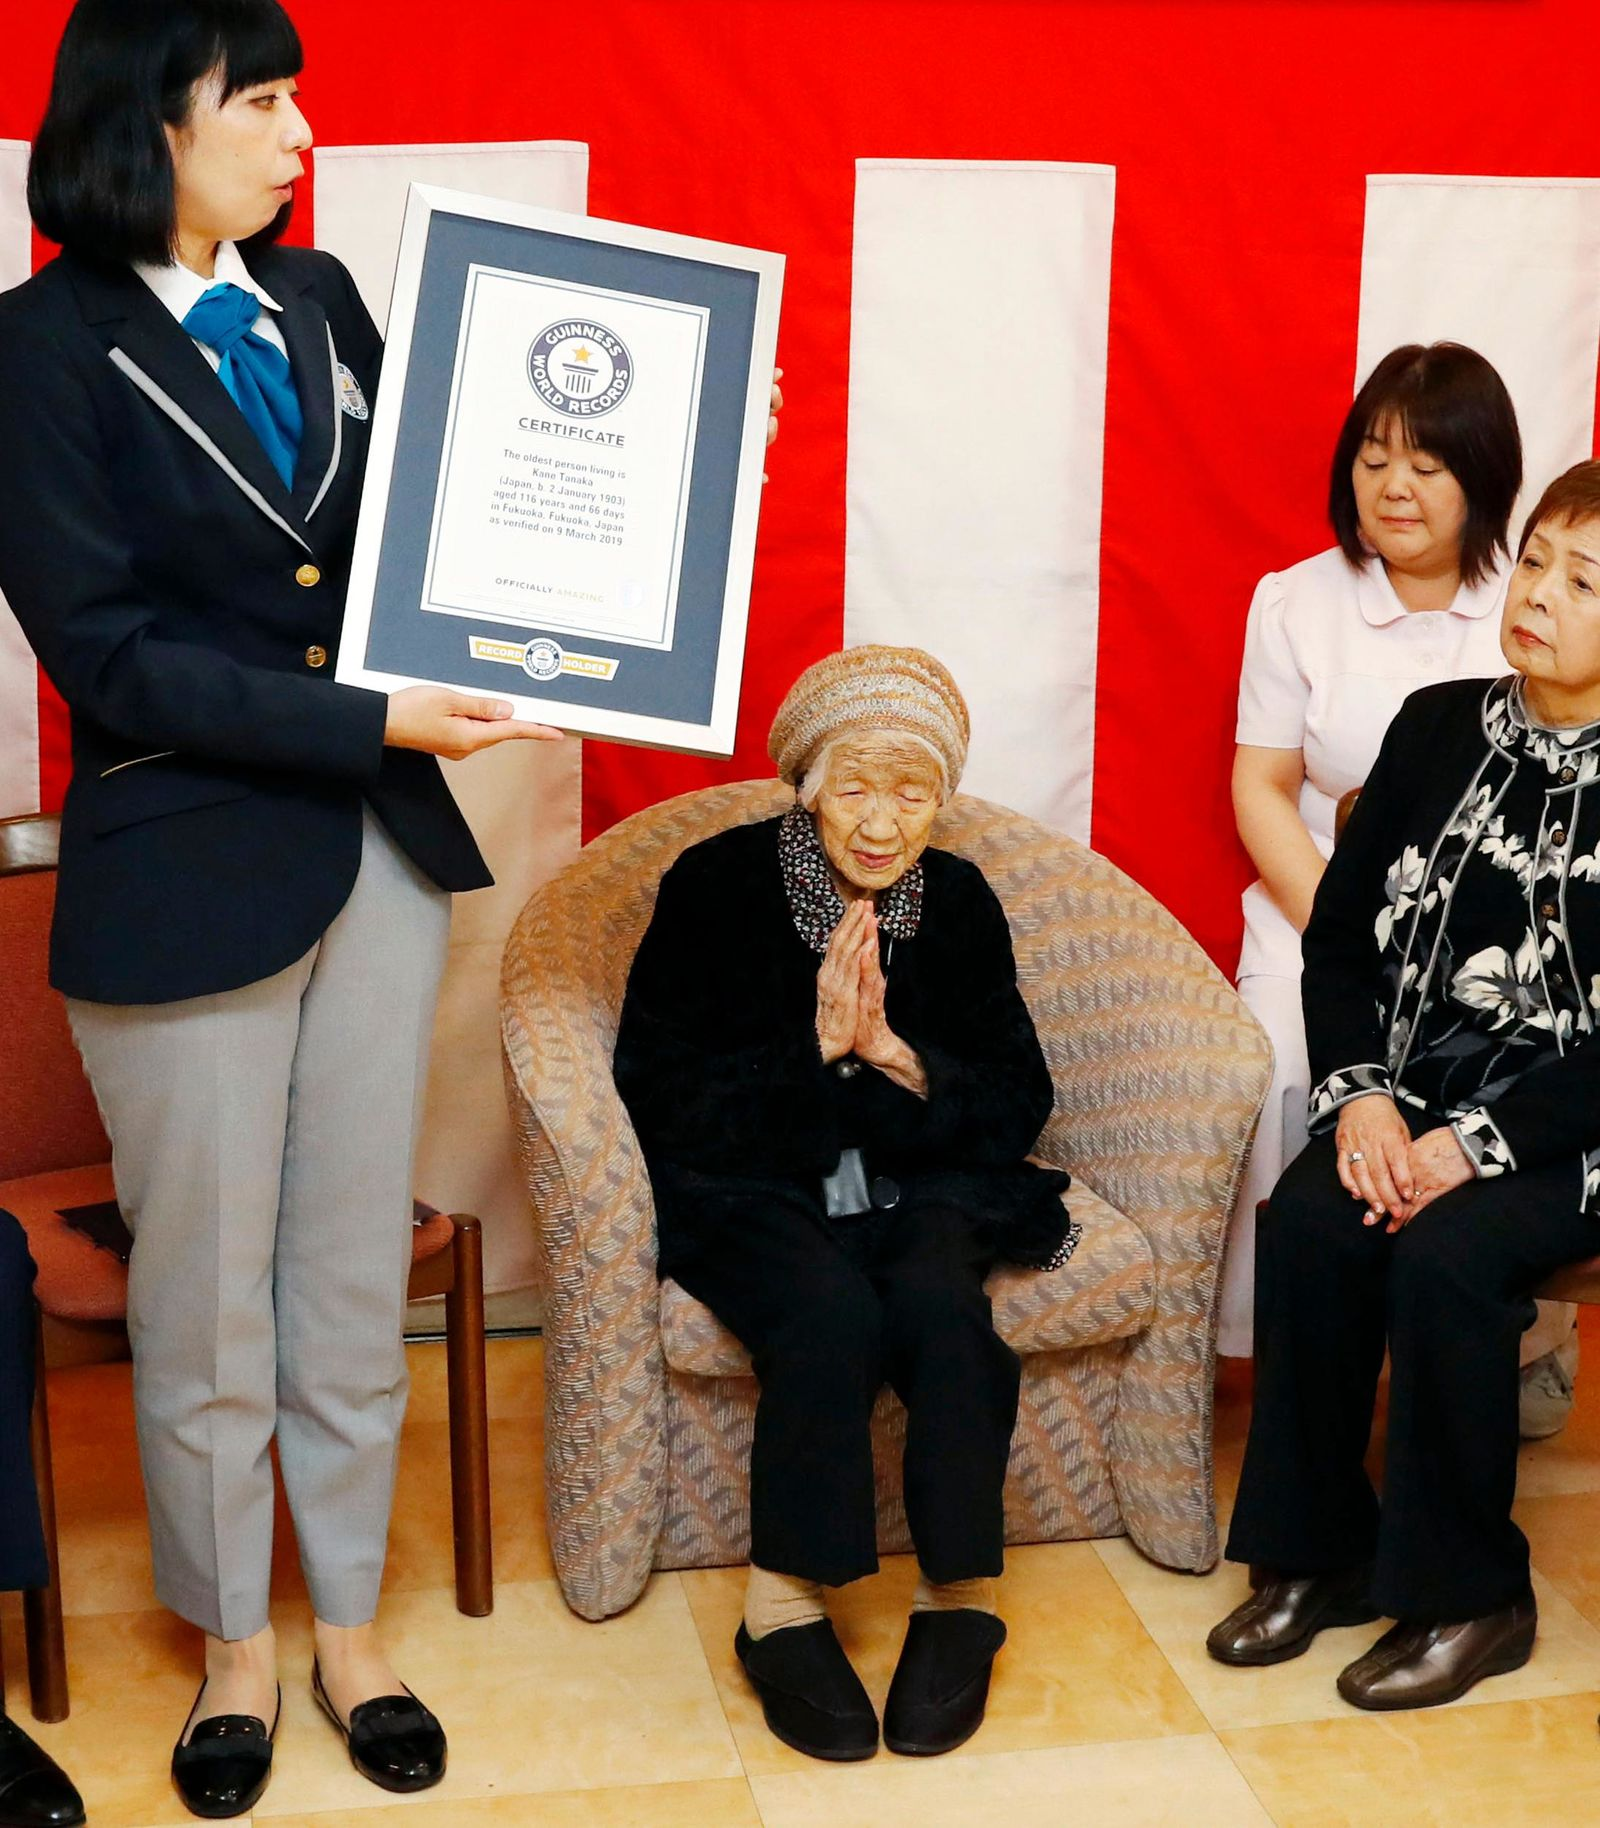 Kane Tanaka, a 116-year-old Japanese woman, puts her hands together as she receives a Guinness World Records certificate at a nursing home where she lives during a ceremony in Fukuoka, southwestern Japan, Saturday, March 9, 2019. Tanaka who loves playing the board game Othello was honored Saturday as the world's oldest living person by Guinness World Records. (Takuto Kaneko/Kyodo News via AP)